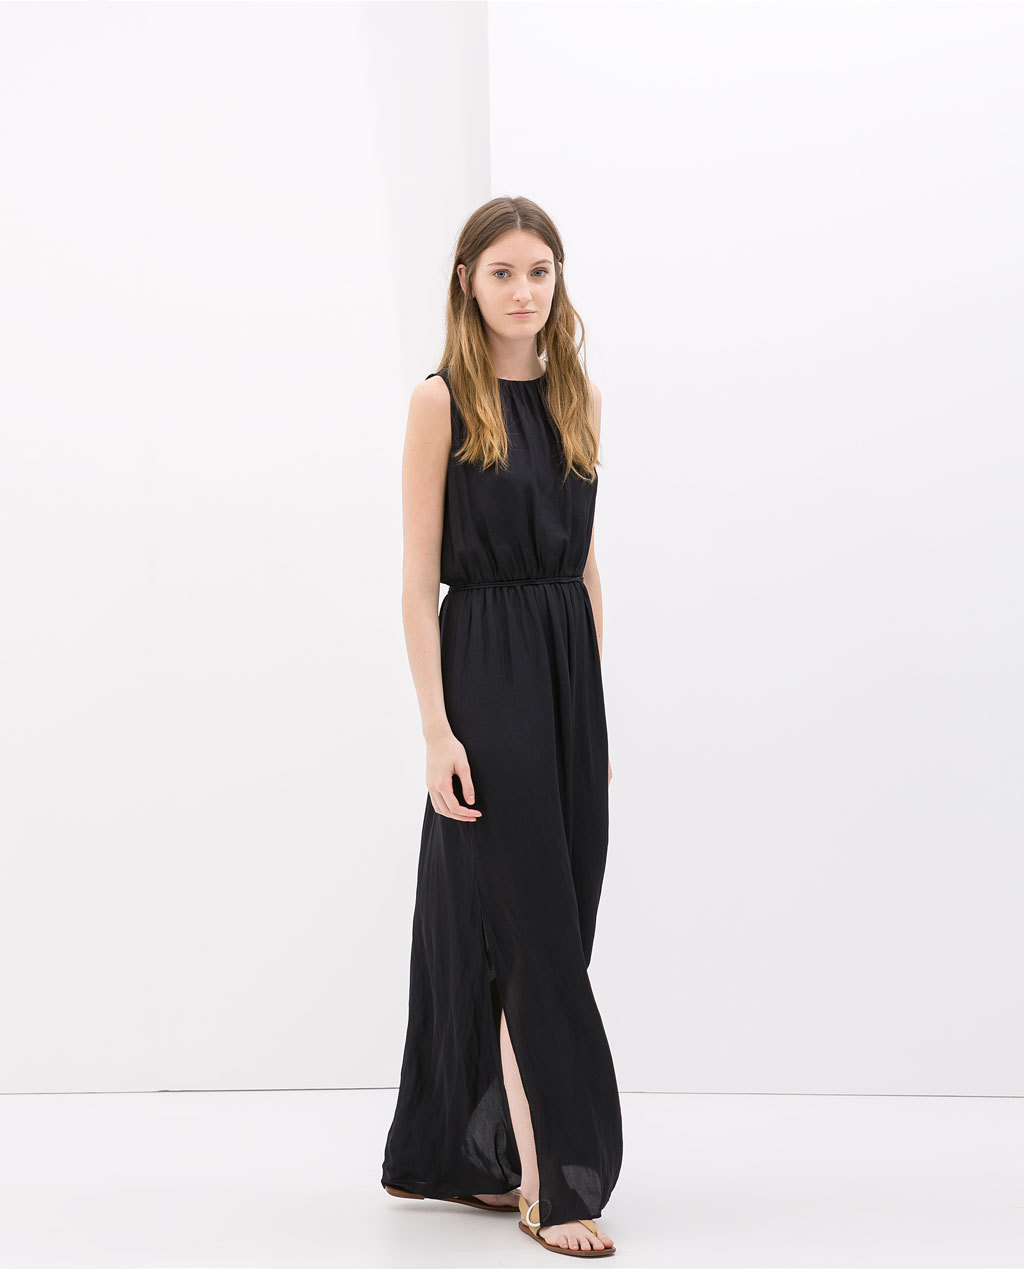 Maxi Dress With Belt - fit: fitted at waist; pattern: plain; sleeve style: sleeveless; style: maxi dress; length: ankle length; waist detail: belted waist/tie at waist/drawstring; predominant colour: black; occasions: casual, holiday; fibres: polyester/polyamide - 100%; neckline: crew; hip detail: slits at hip; sleeve length: sleeveless; texture group: sheer fabrics/chiffon/organza etc.; pattern type: fabric; season: s/s 2014